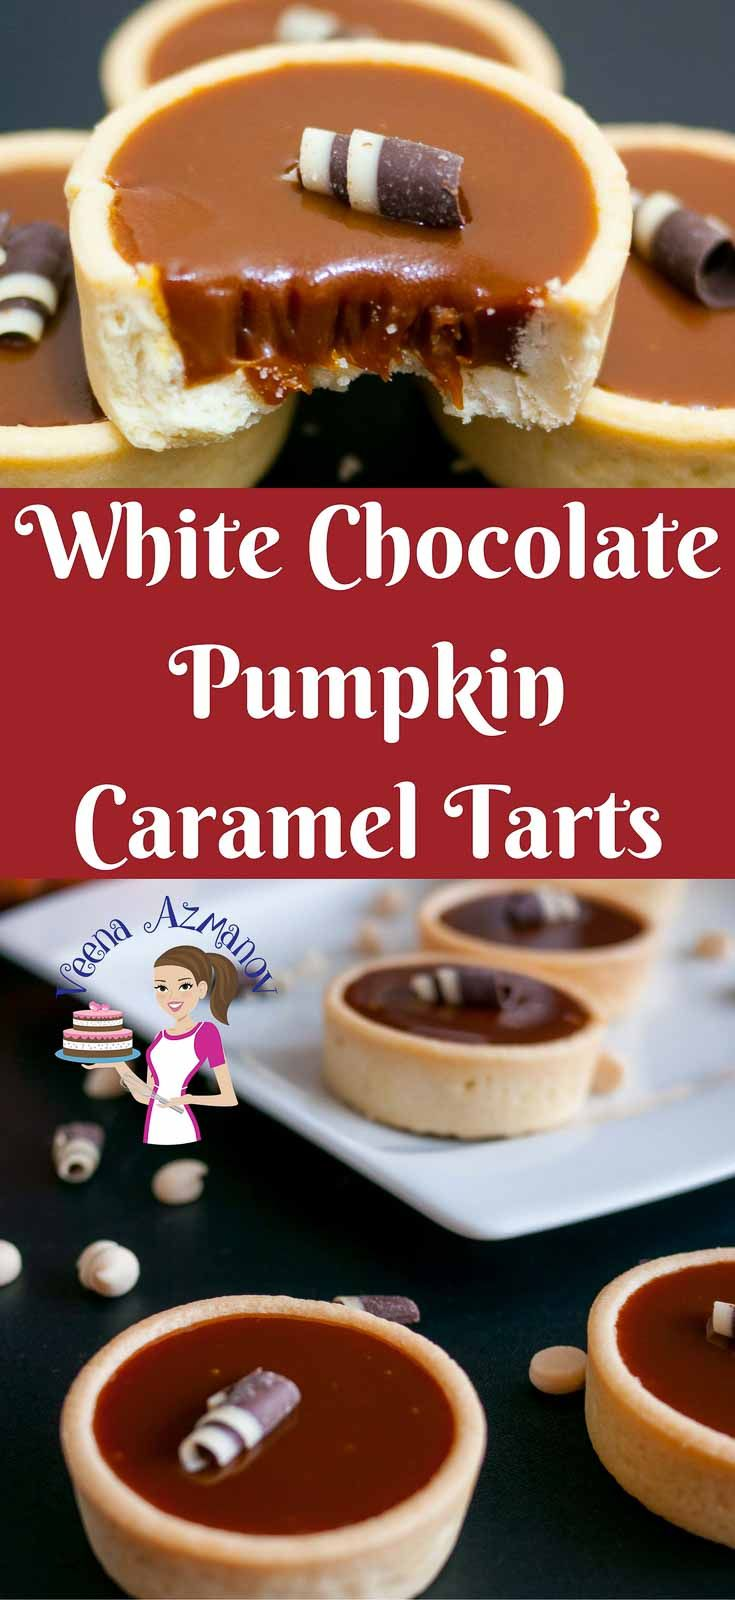 WHITE CHOCOLATE PUMPKIN CARAMEL TARTS  These white chocolate pumpkin caramel tarts are made with sweet caramel enriched with falls own pumpkin puree and pumpkin spice. They are simple easy and effortless. Weather you want to go semi homemade or baked from scratch these are an elegant way to entertain or dress a dessert table. #falldesserts #whitechocolate #pumpkin #tart #caramel #pumpkintart #chocolatetart #thanksgiving #fall #desserts